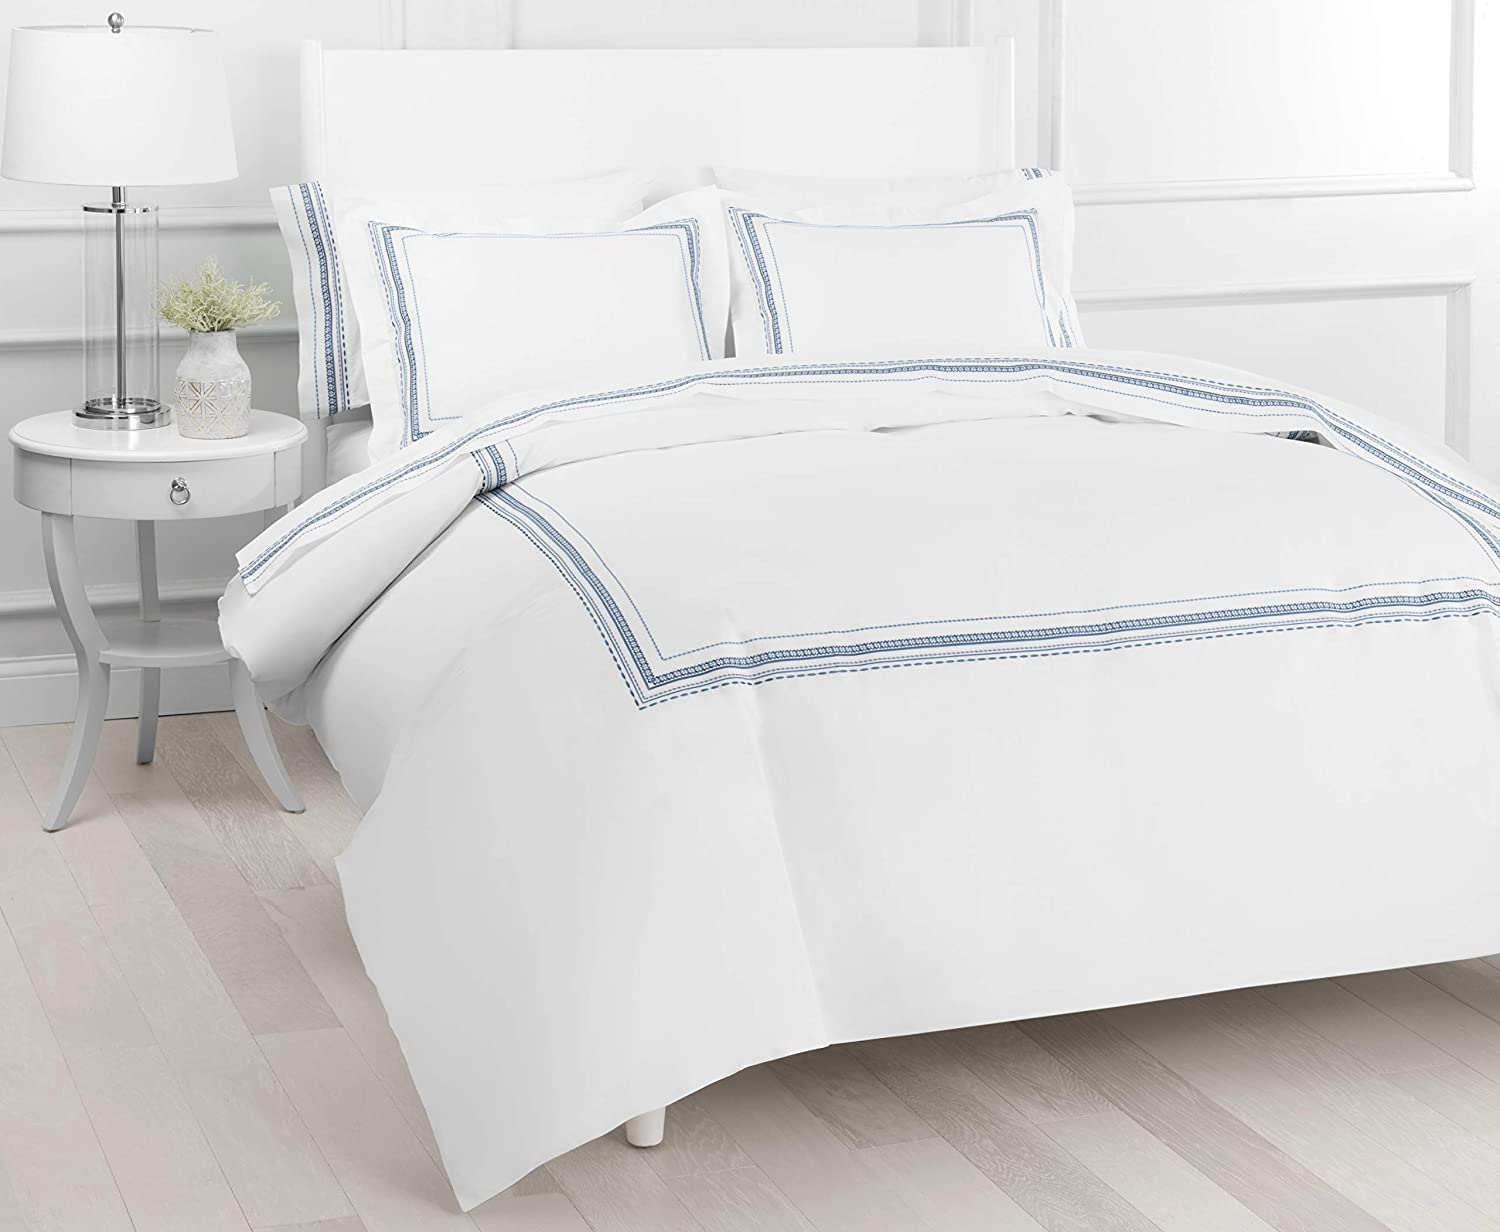 Melange Home Percale Cotton Vinsley Embroidery Duvet Set, Twin, Slate on White